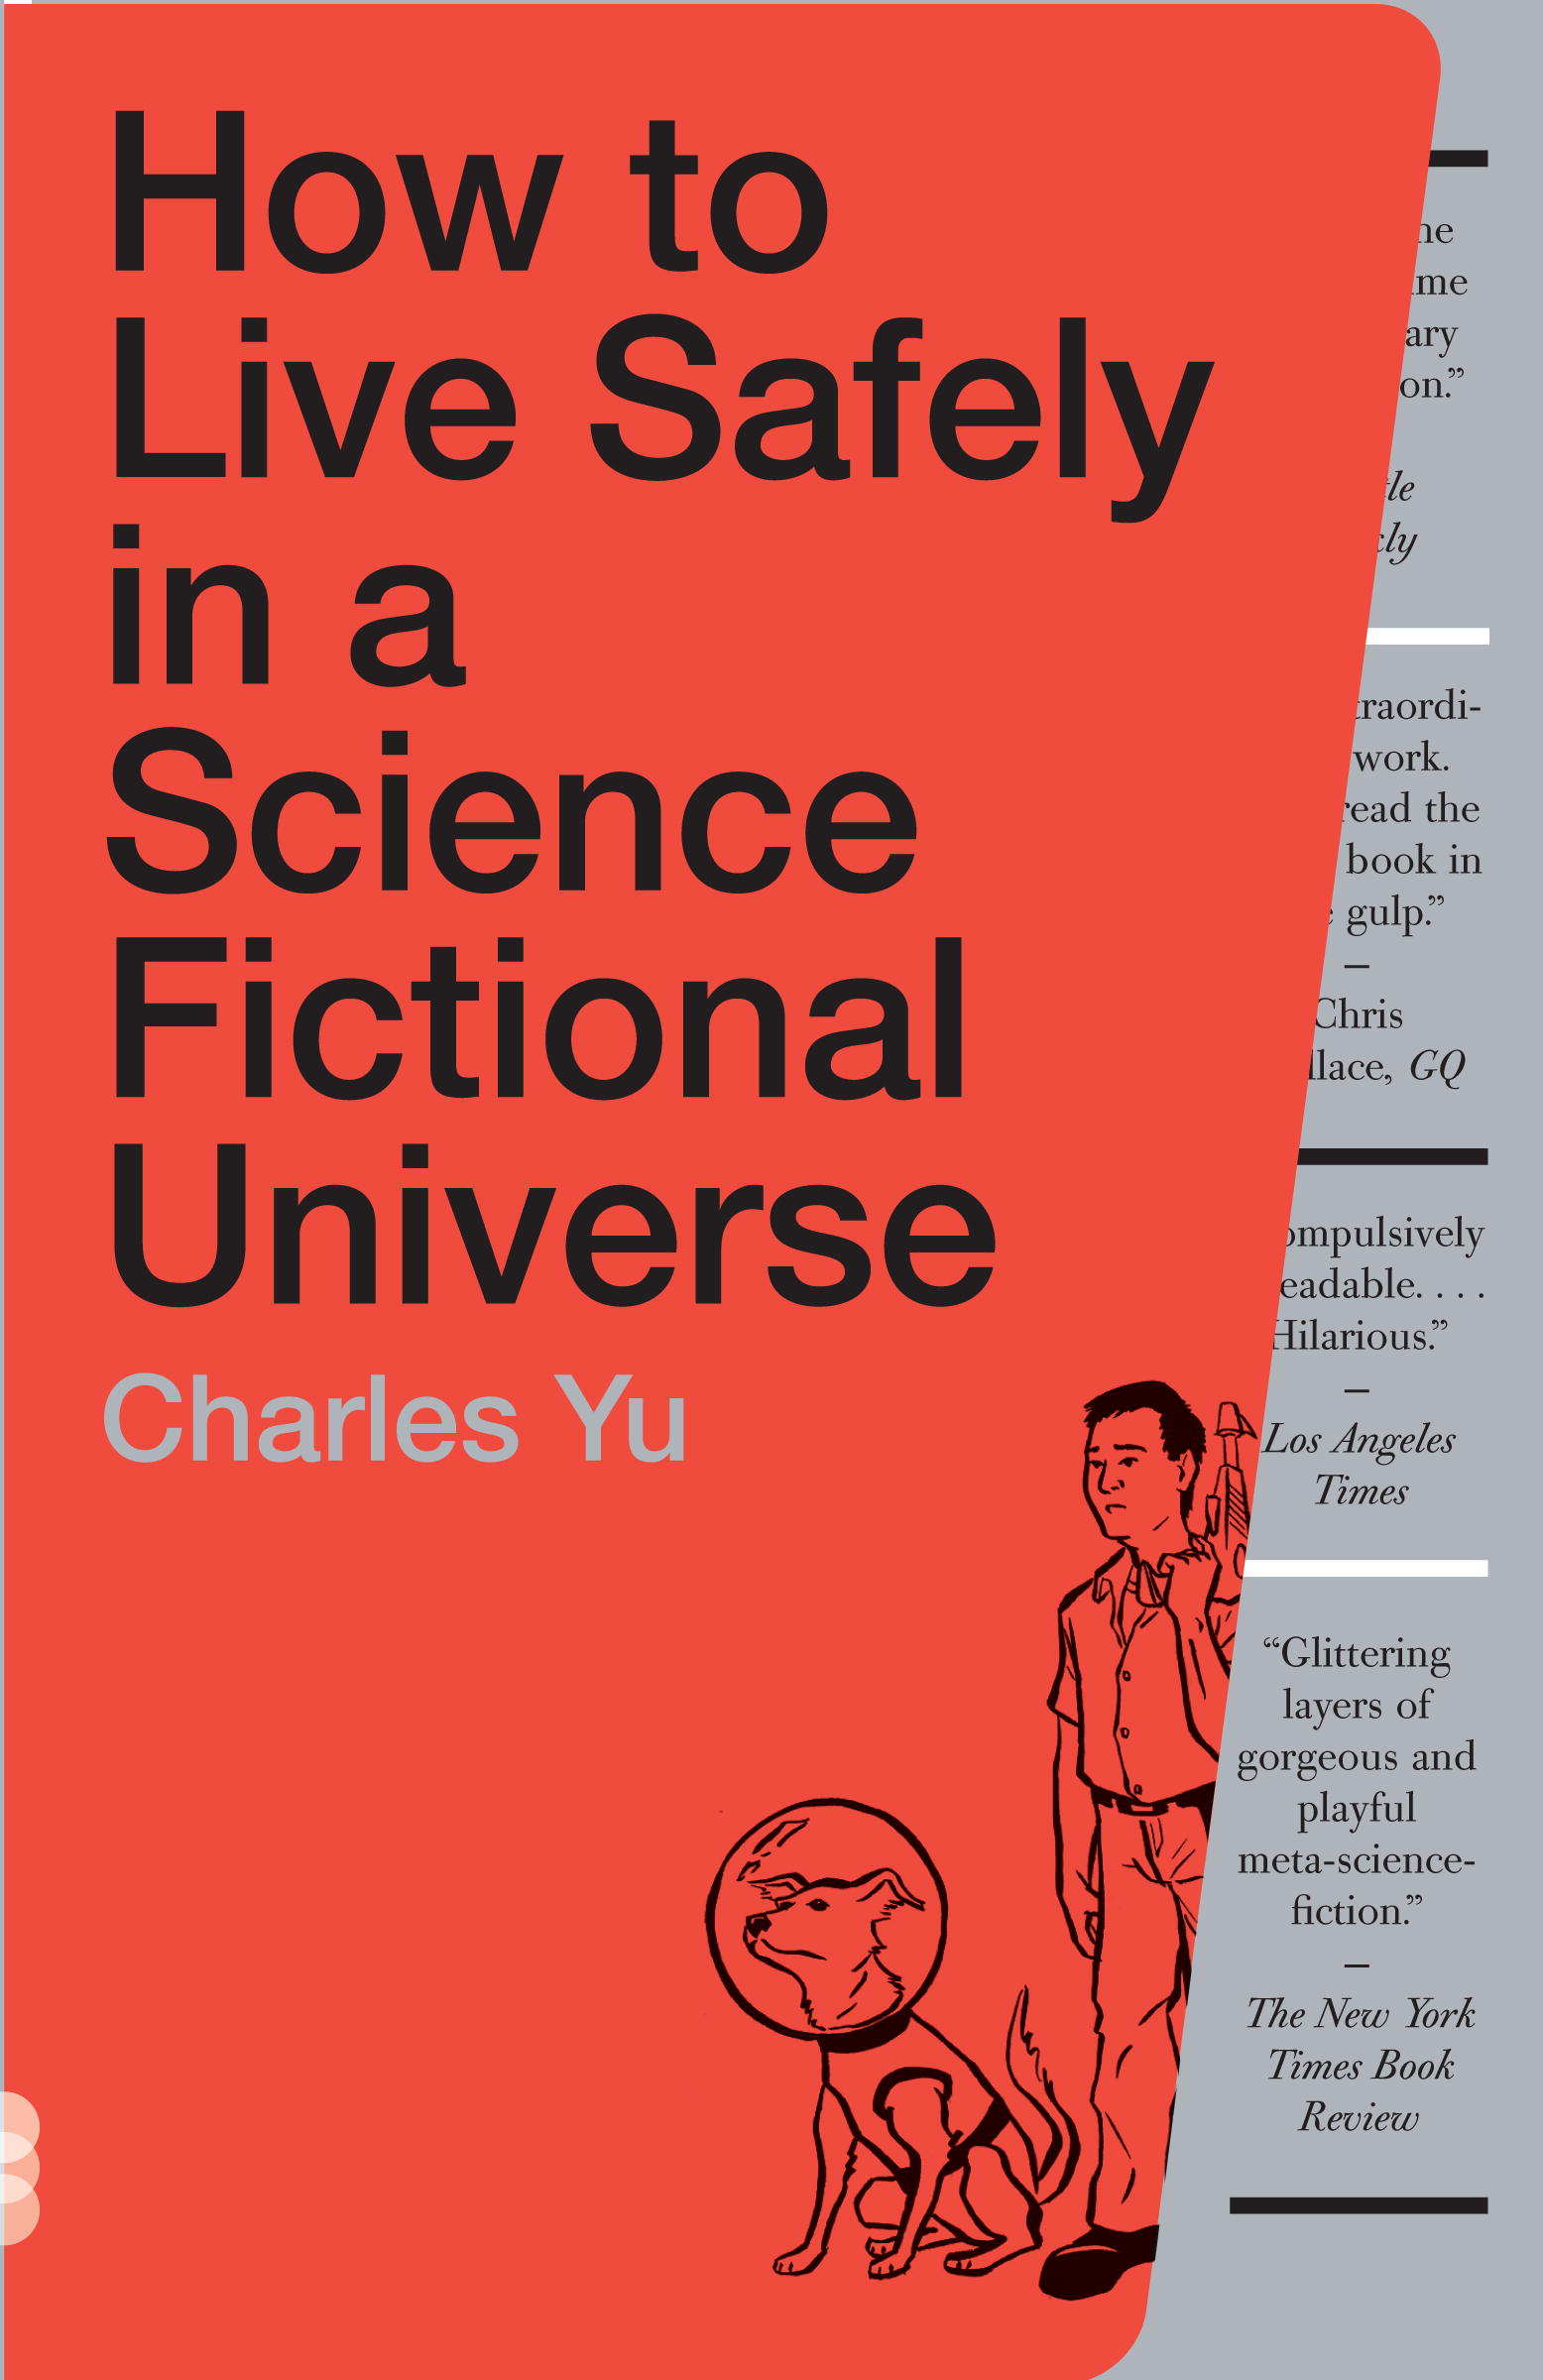 how-to-live-safely-in-a-science-fictional-universe-book-cover-01.jpg